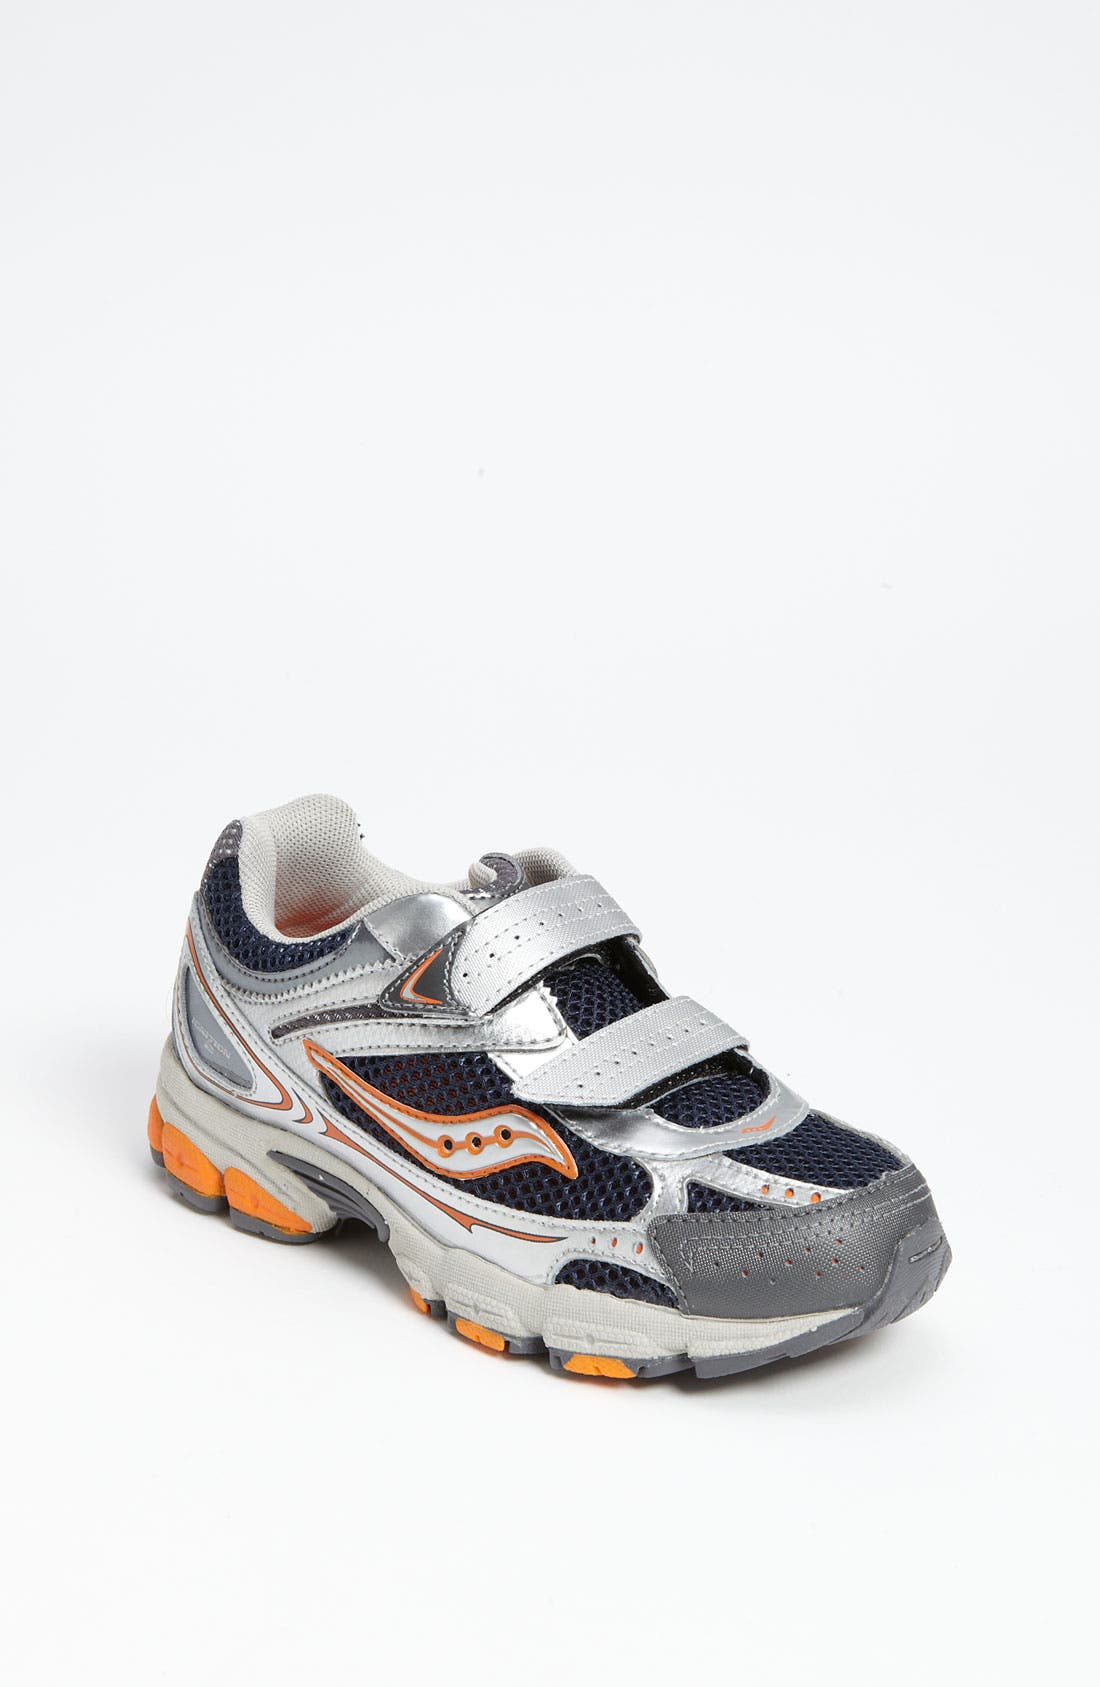 Main Image - Saucony 'Grid Profile' Sneaker (Toddler & Little Kid)